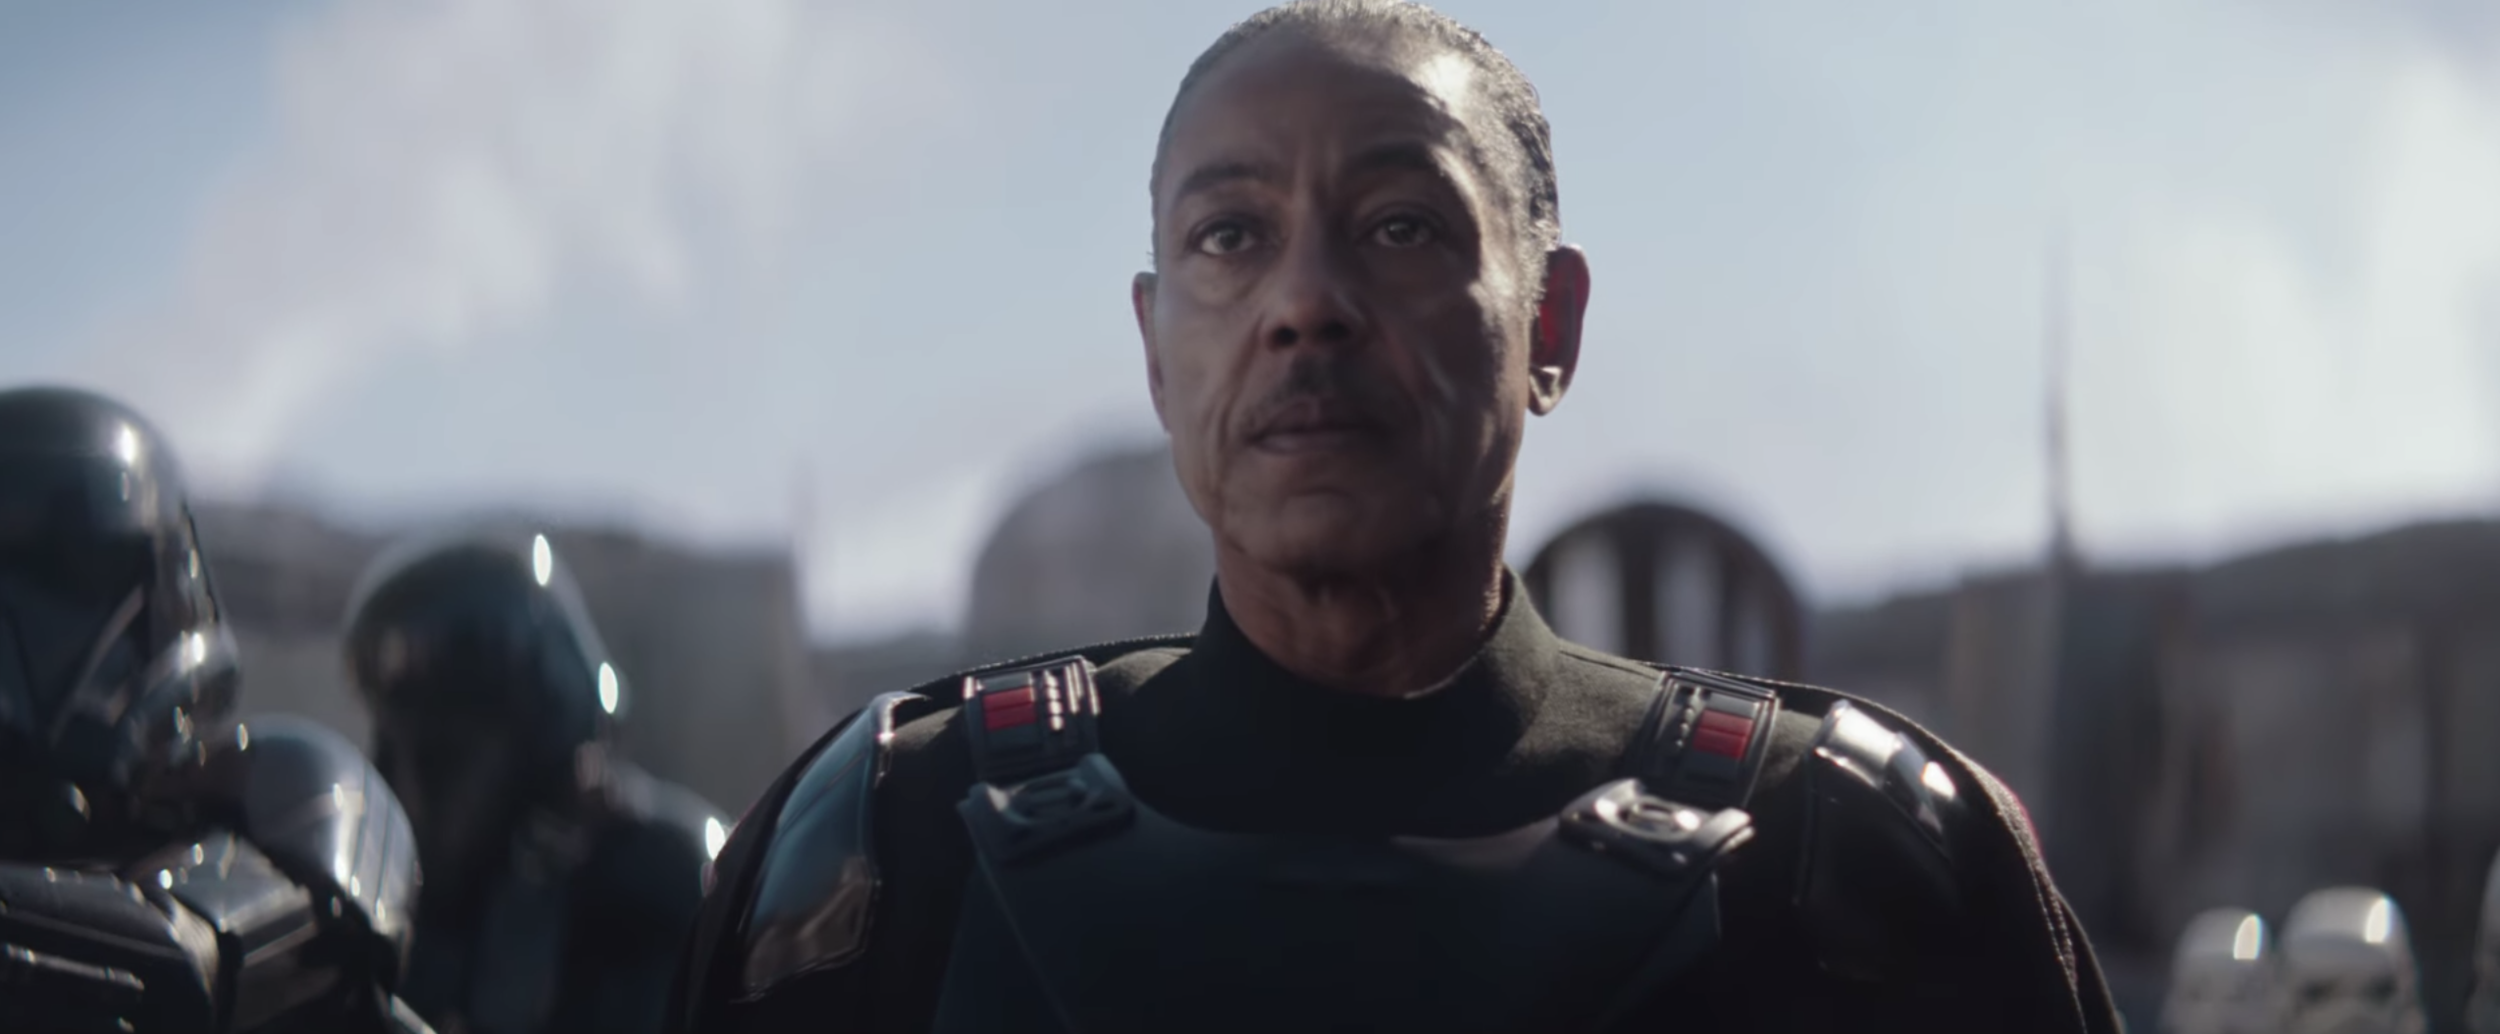 meet-the-new-star-wars-characters-being-introduced-in-the-mandalorian3